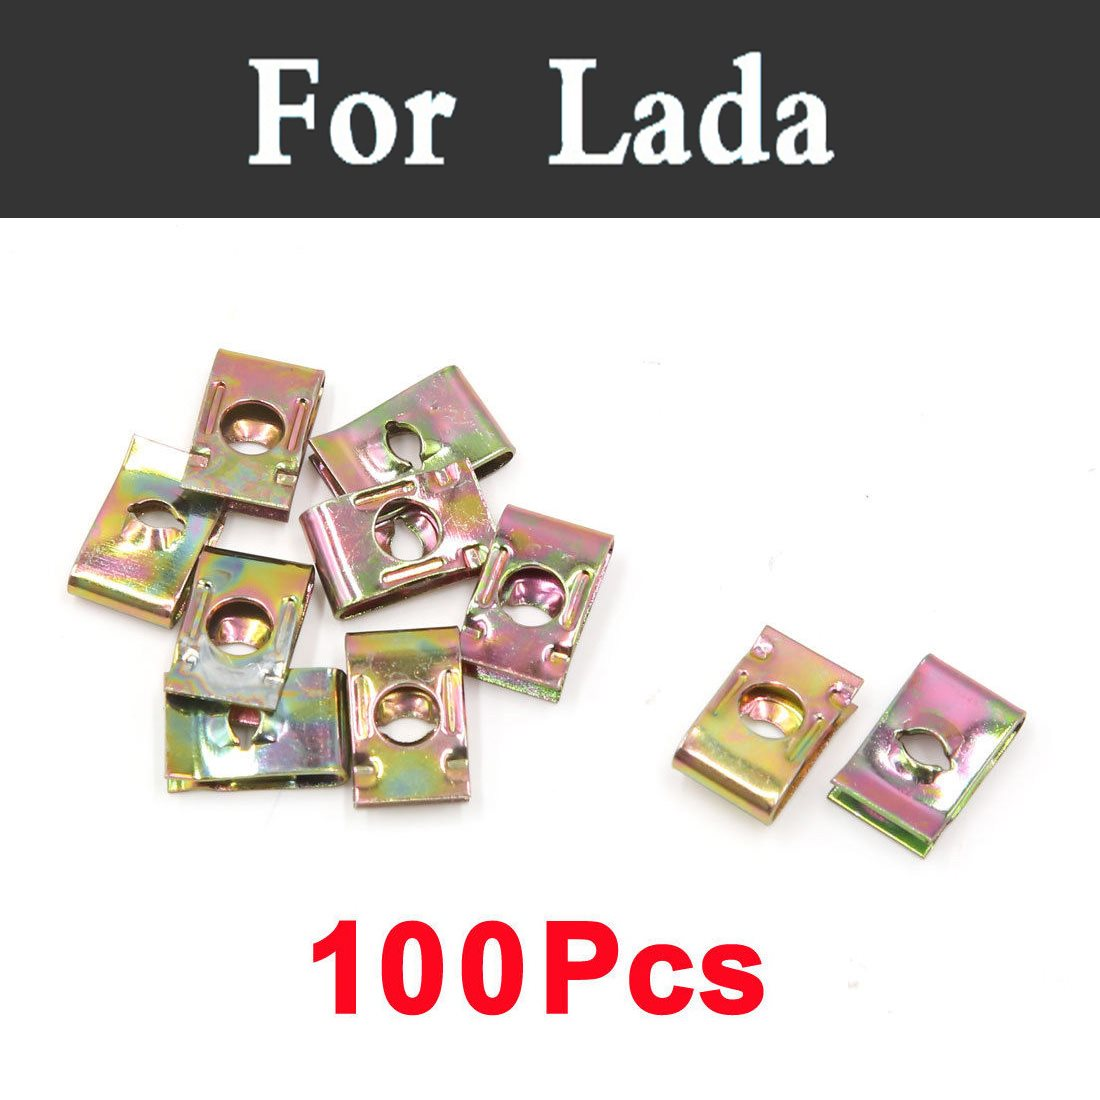 100pcs Bronze Tone Car Styling Door Panel Screw U-Type Fastener Clips For Lada Oka 2105 2106 2107 2109 2110 2112 <font><b>2113</b></font> 2114 2115 image